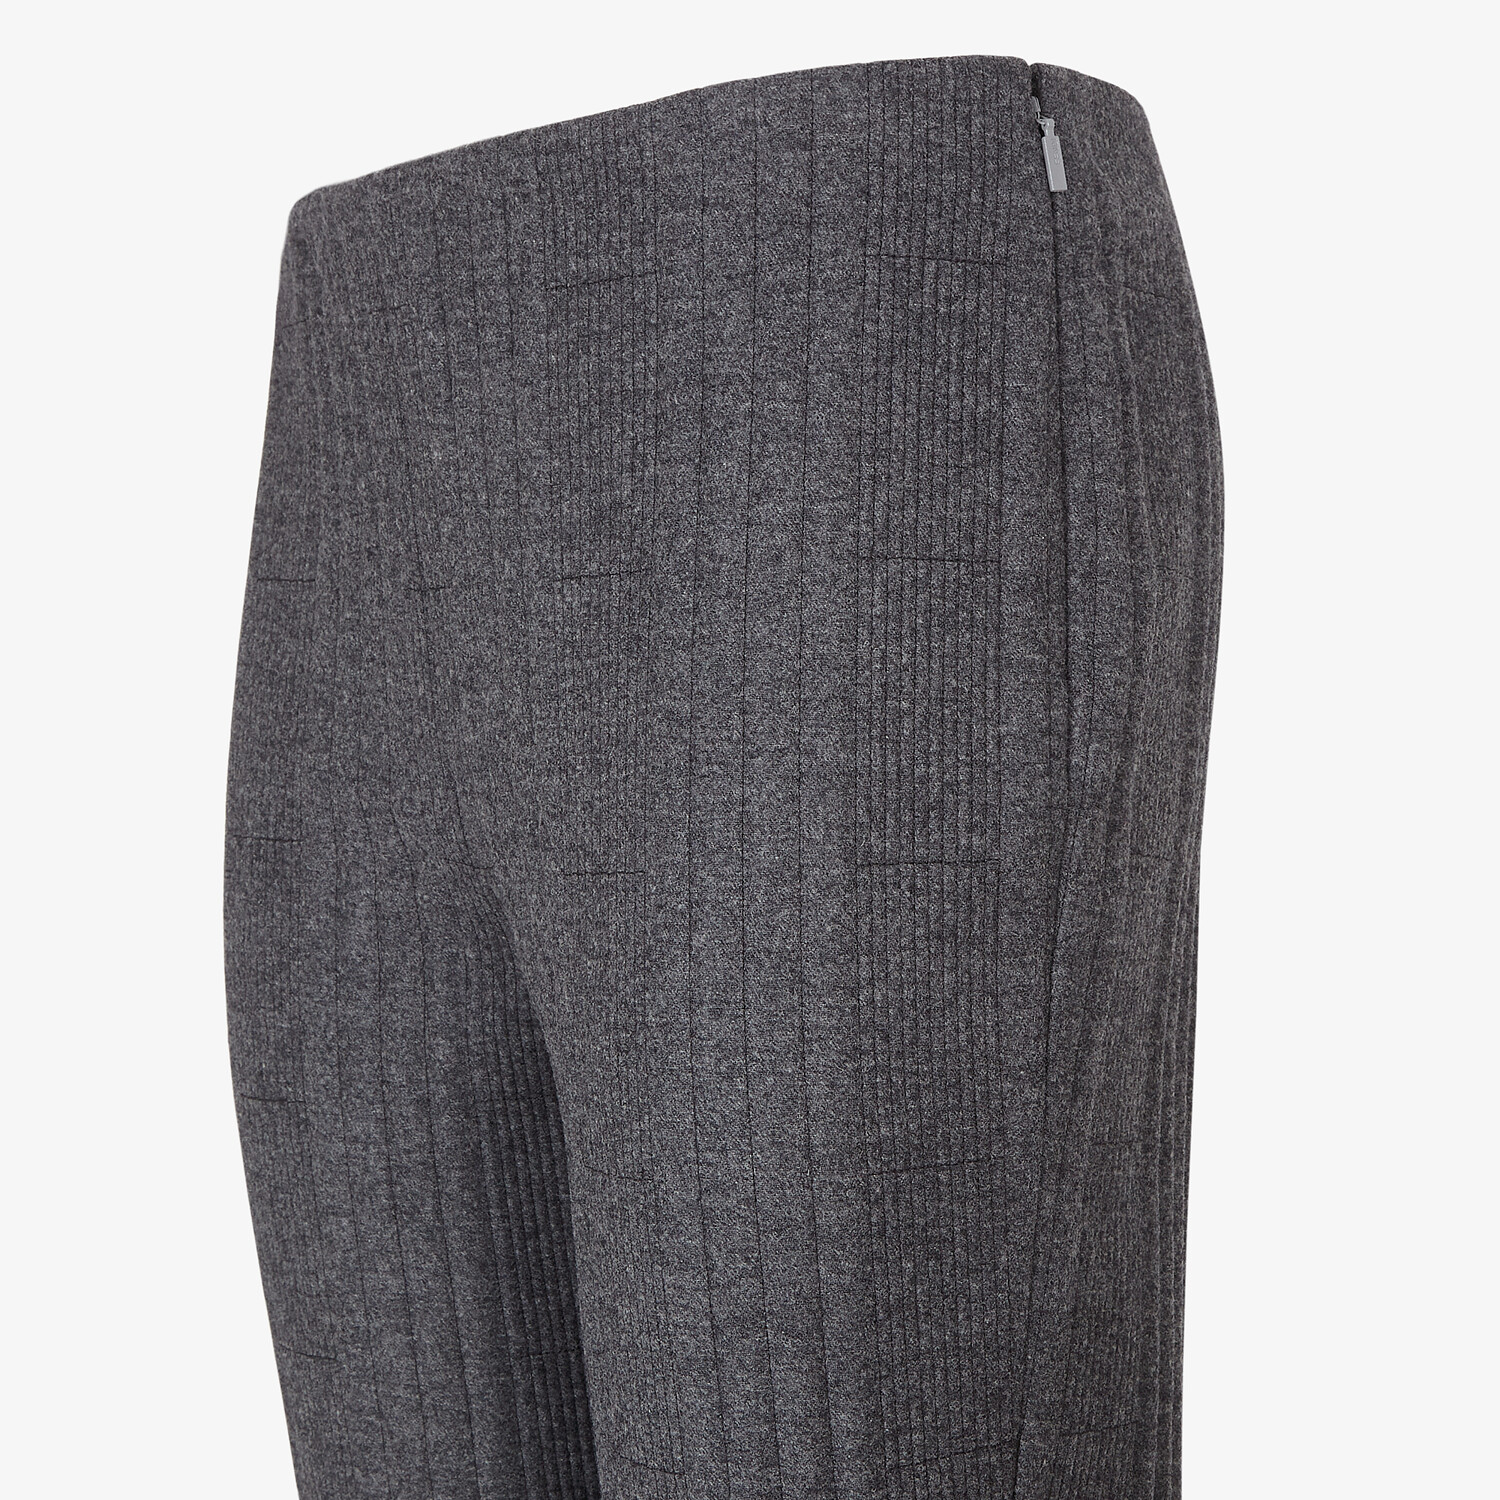 FENDI TROUSERS - Grey cashmere and flannel trousers - view 3 detail